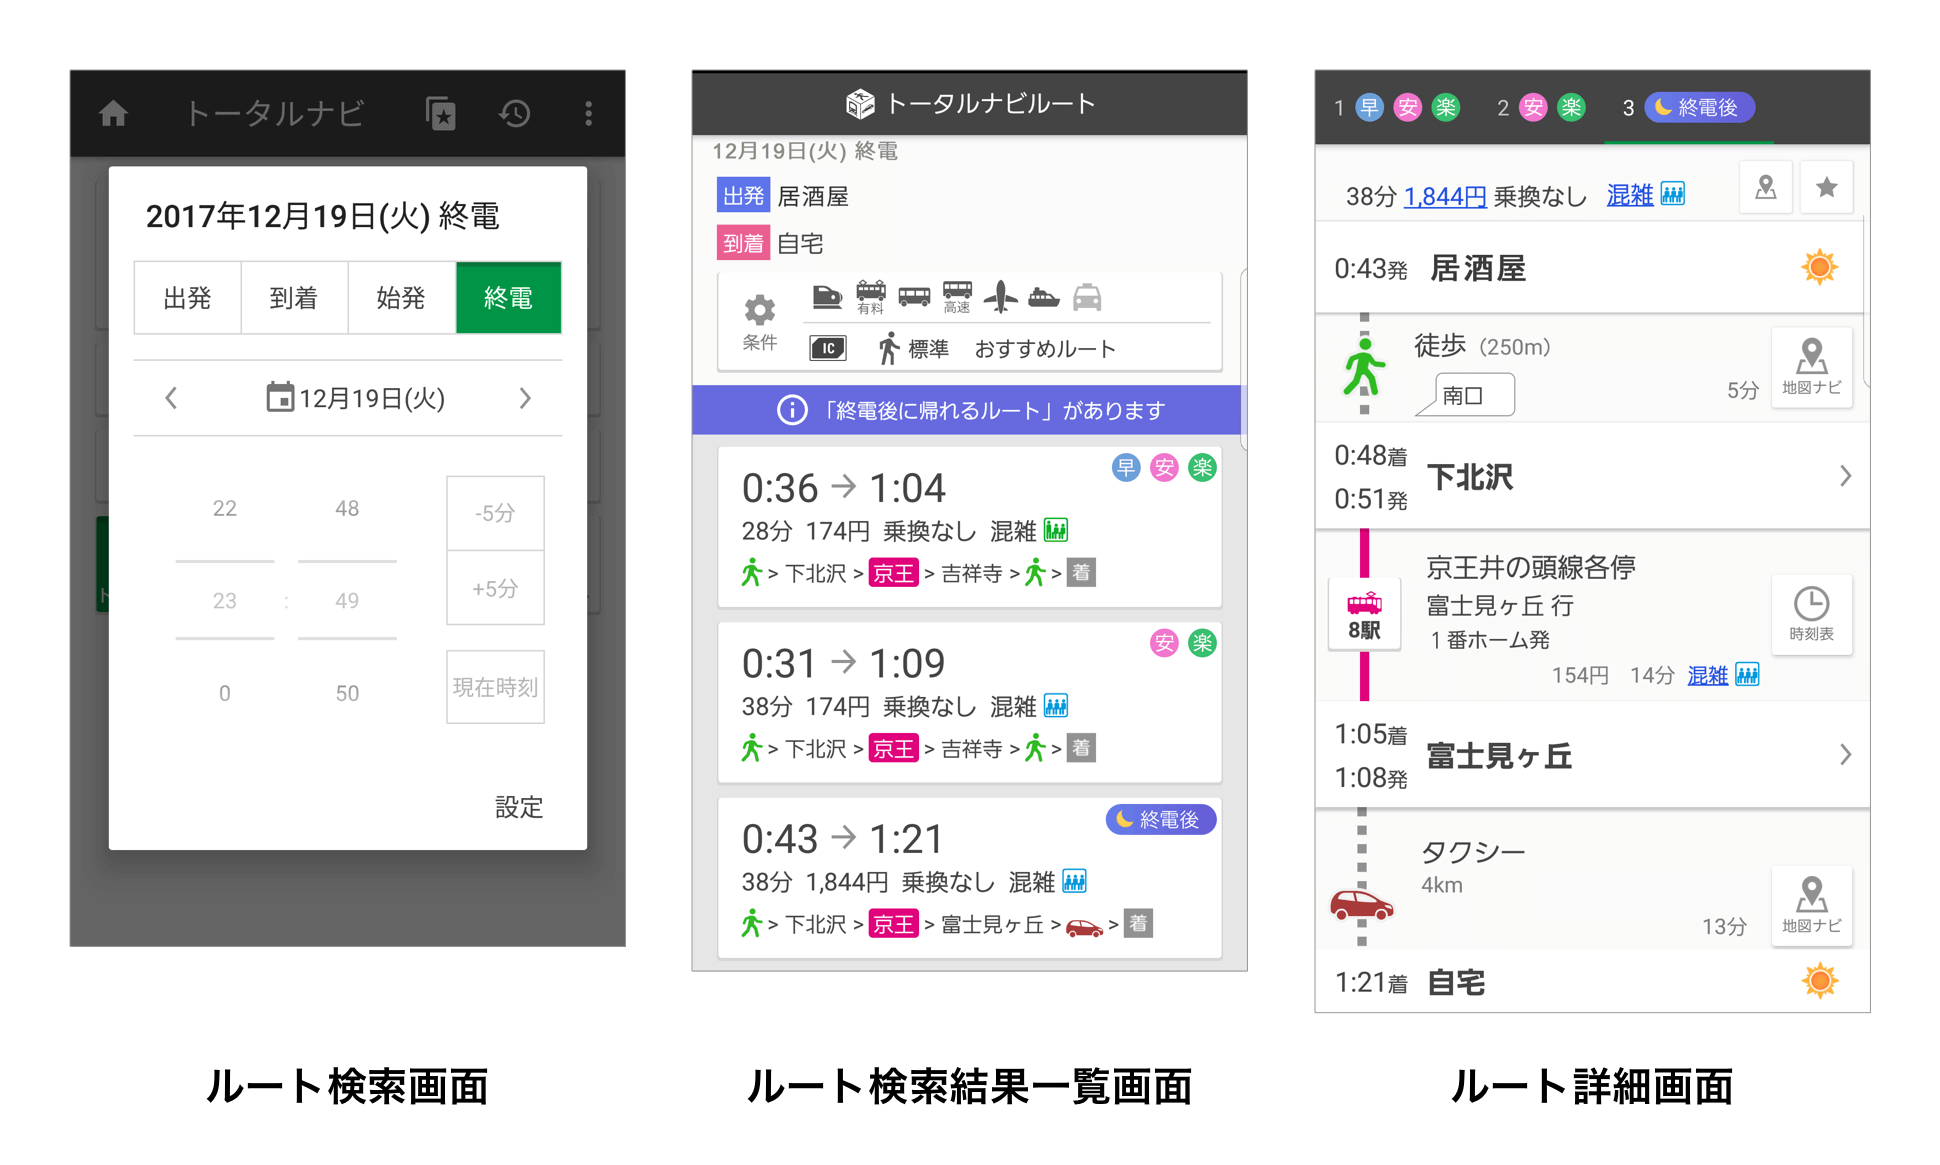 http://corporate.navitime.co.jp/topics/pr_20171219.png